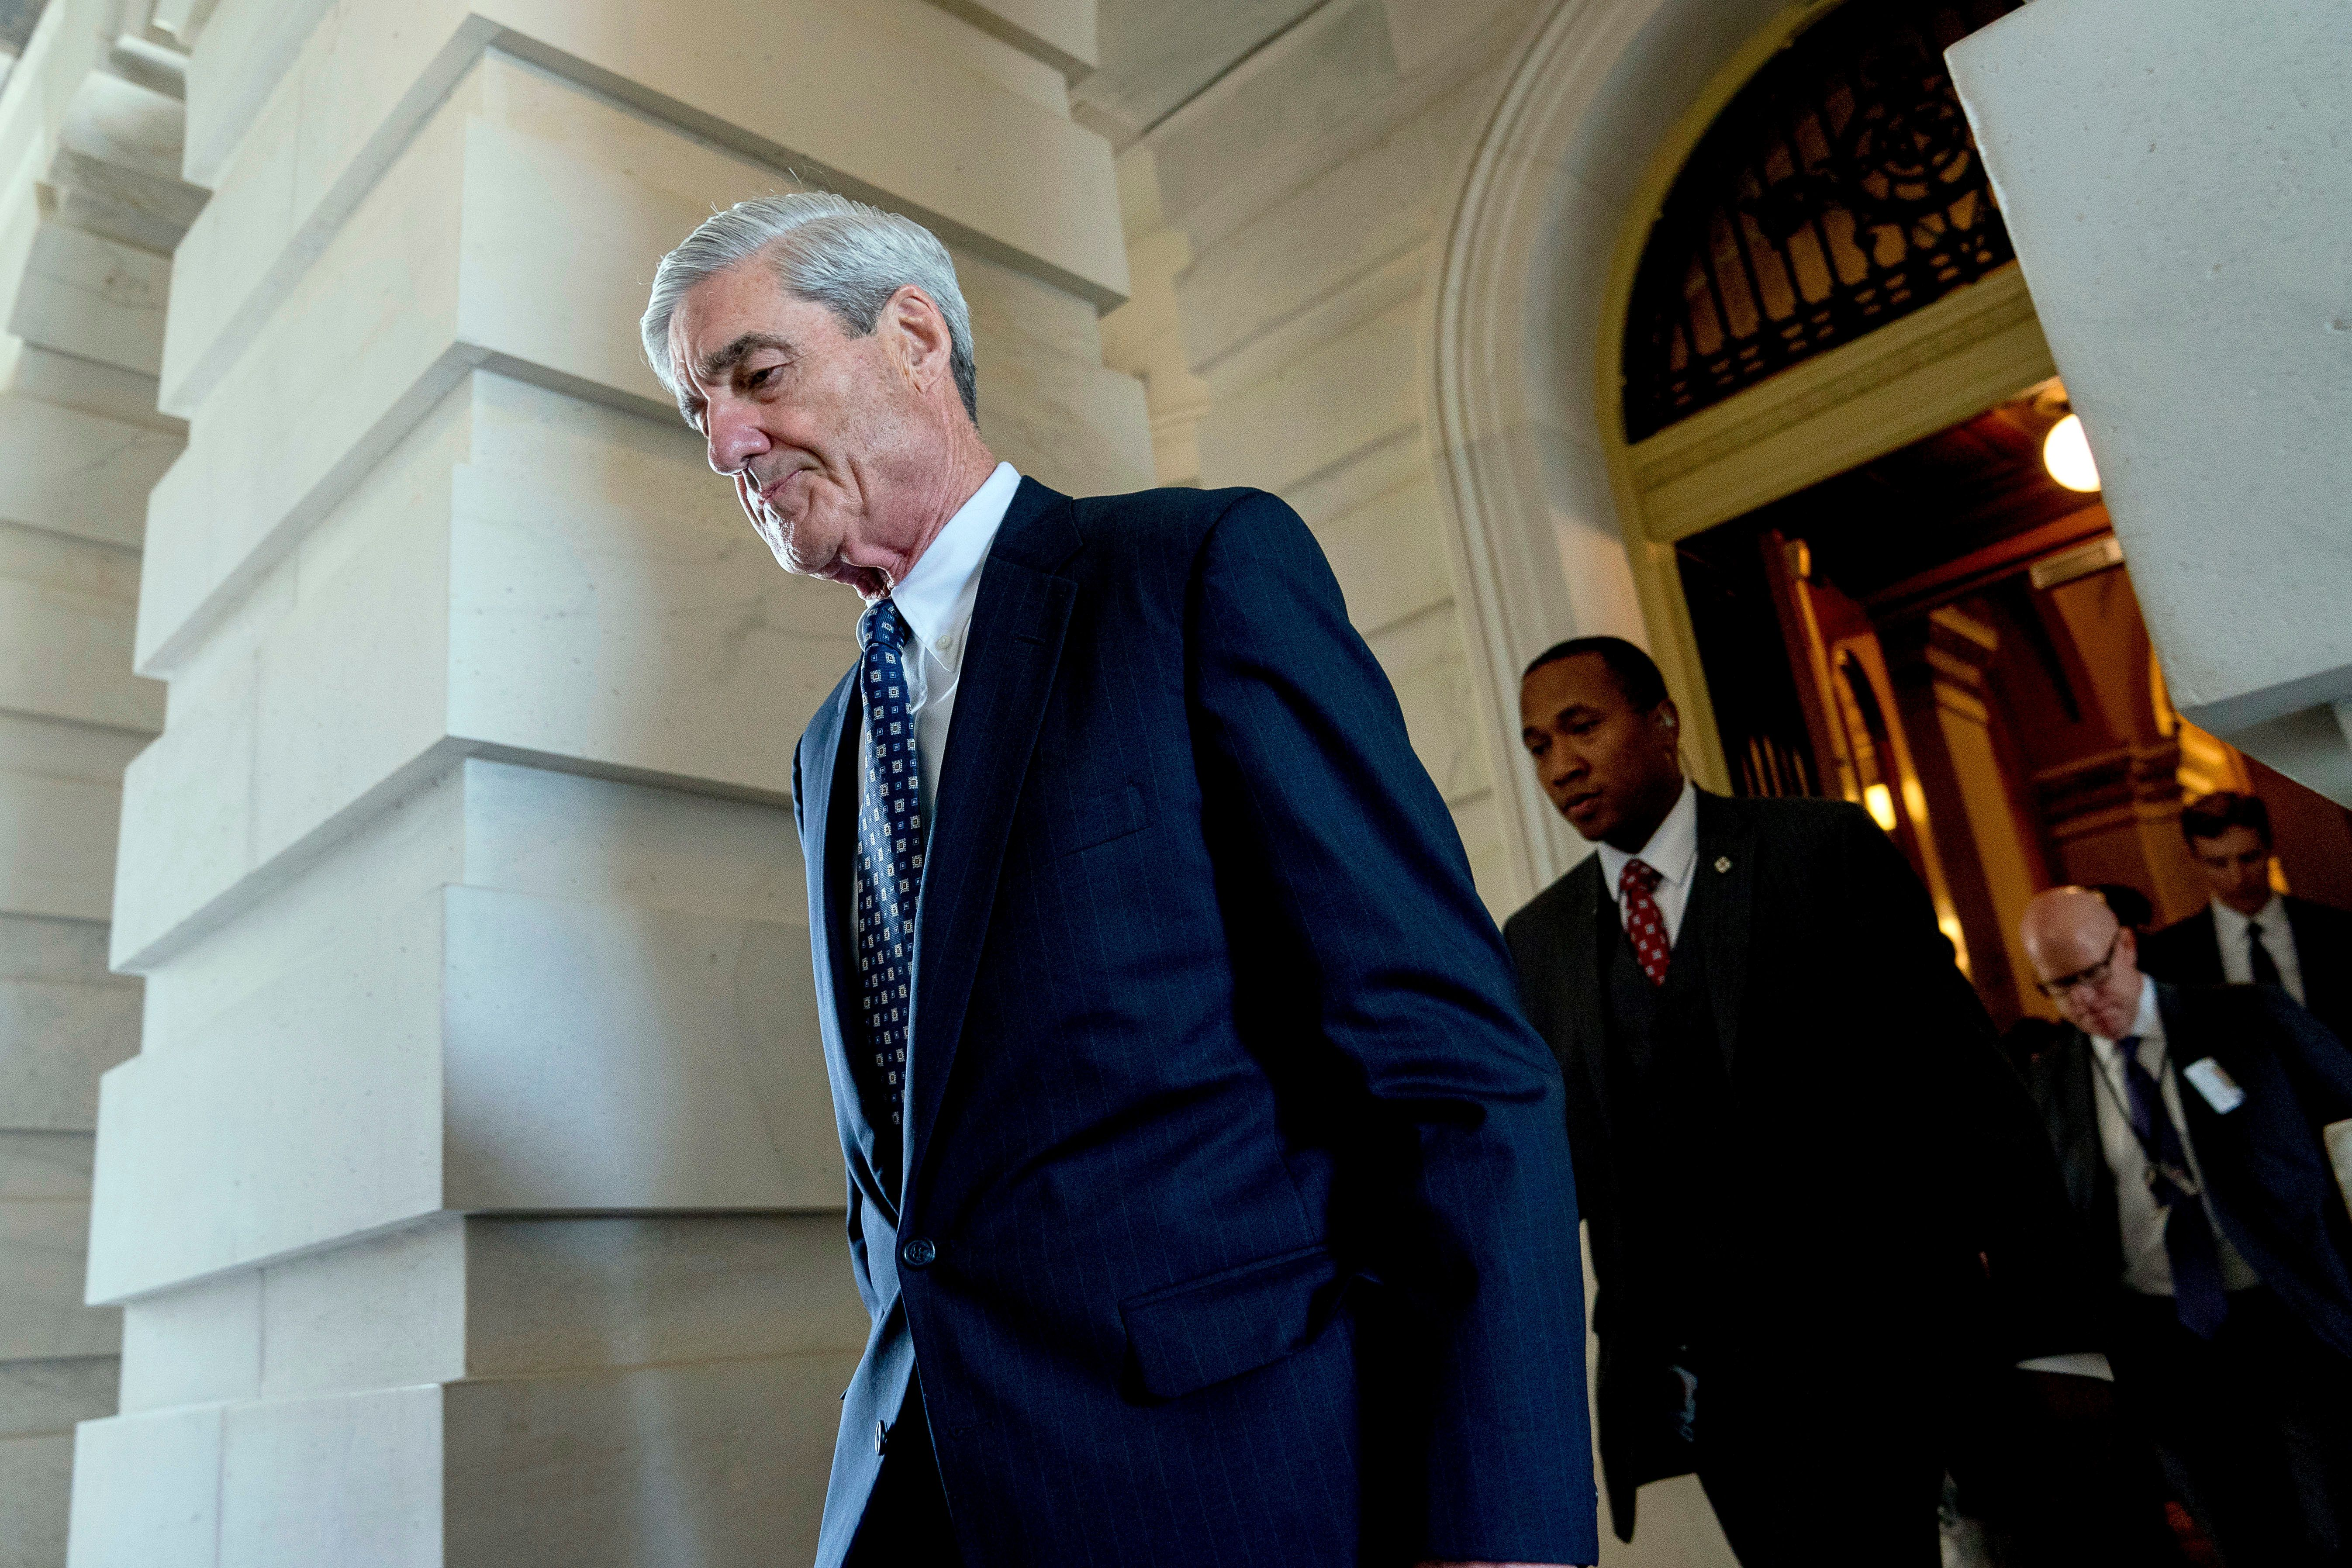 FILE - In this June 21, 2017, file photo, former FBI Director Robert Mueller, the special counsel probing Russian interference in the 2016 election, departs Capitol Hill following a closed door meeting in Washington. A 2001 Justice Department memo warned that no nation, including the United States, was immune from the threat posed by Russian organized crime. The special counsel investigation is bringing attention to Russian efforts to meddle in democratic processes, the type of intelligence gathering that in the past has relied on hired hackers. It's not clear how much the probe by Mueller will center on the criminal underbelly of Moscow, but he's already picked some lawyers with experience confronting organized crime. (AP Photo/Andrew Harnik, File)